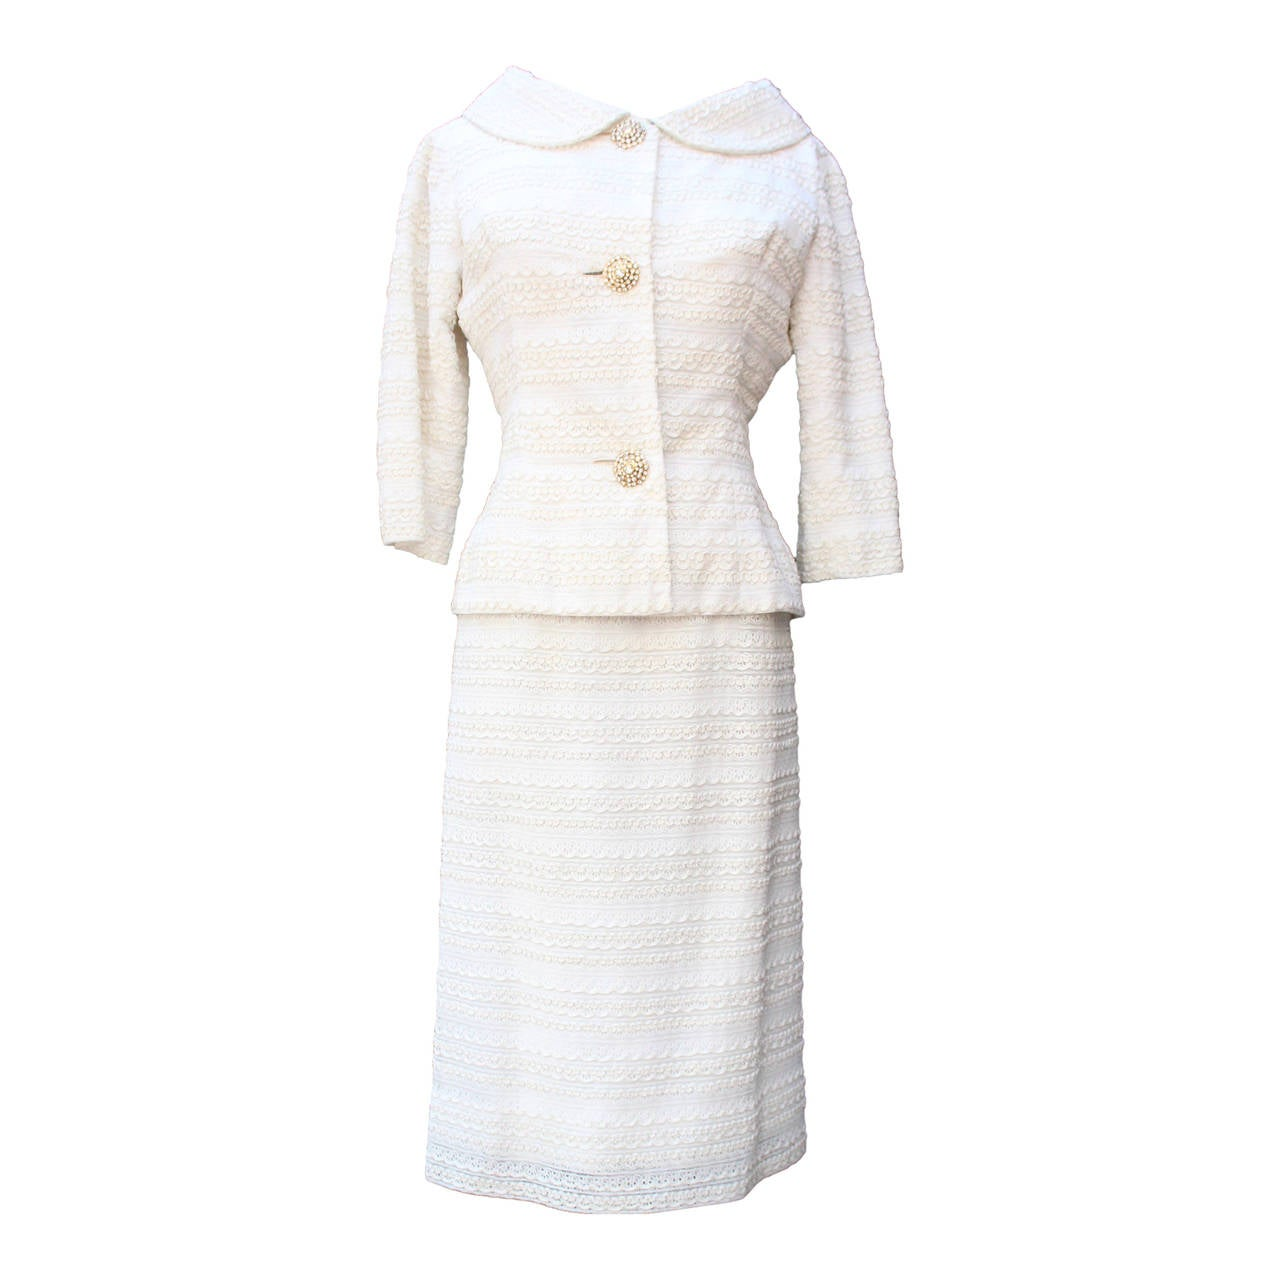 1961 Carven Haute Couture White Lace Dress and Jacket Ensemble 1